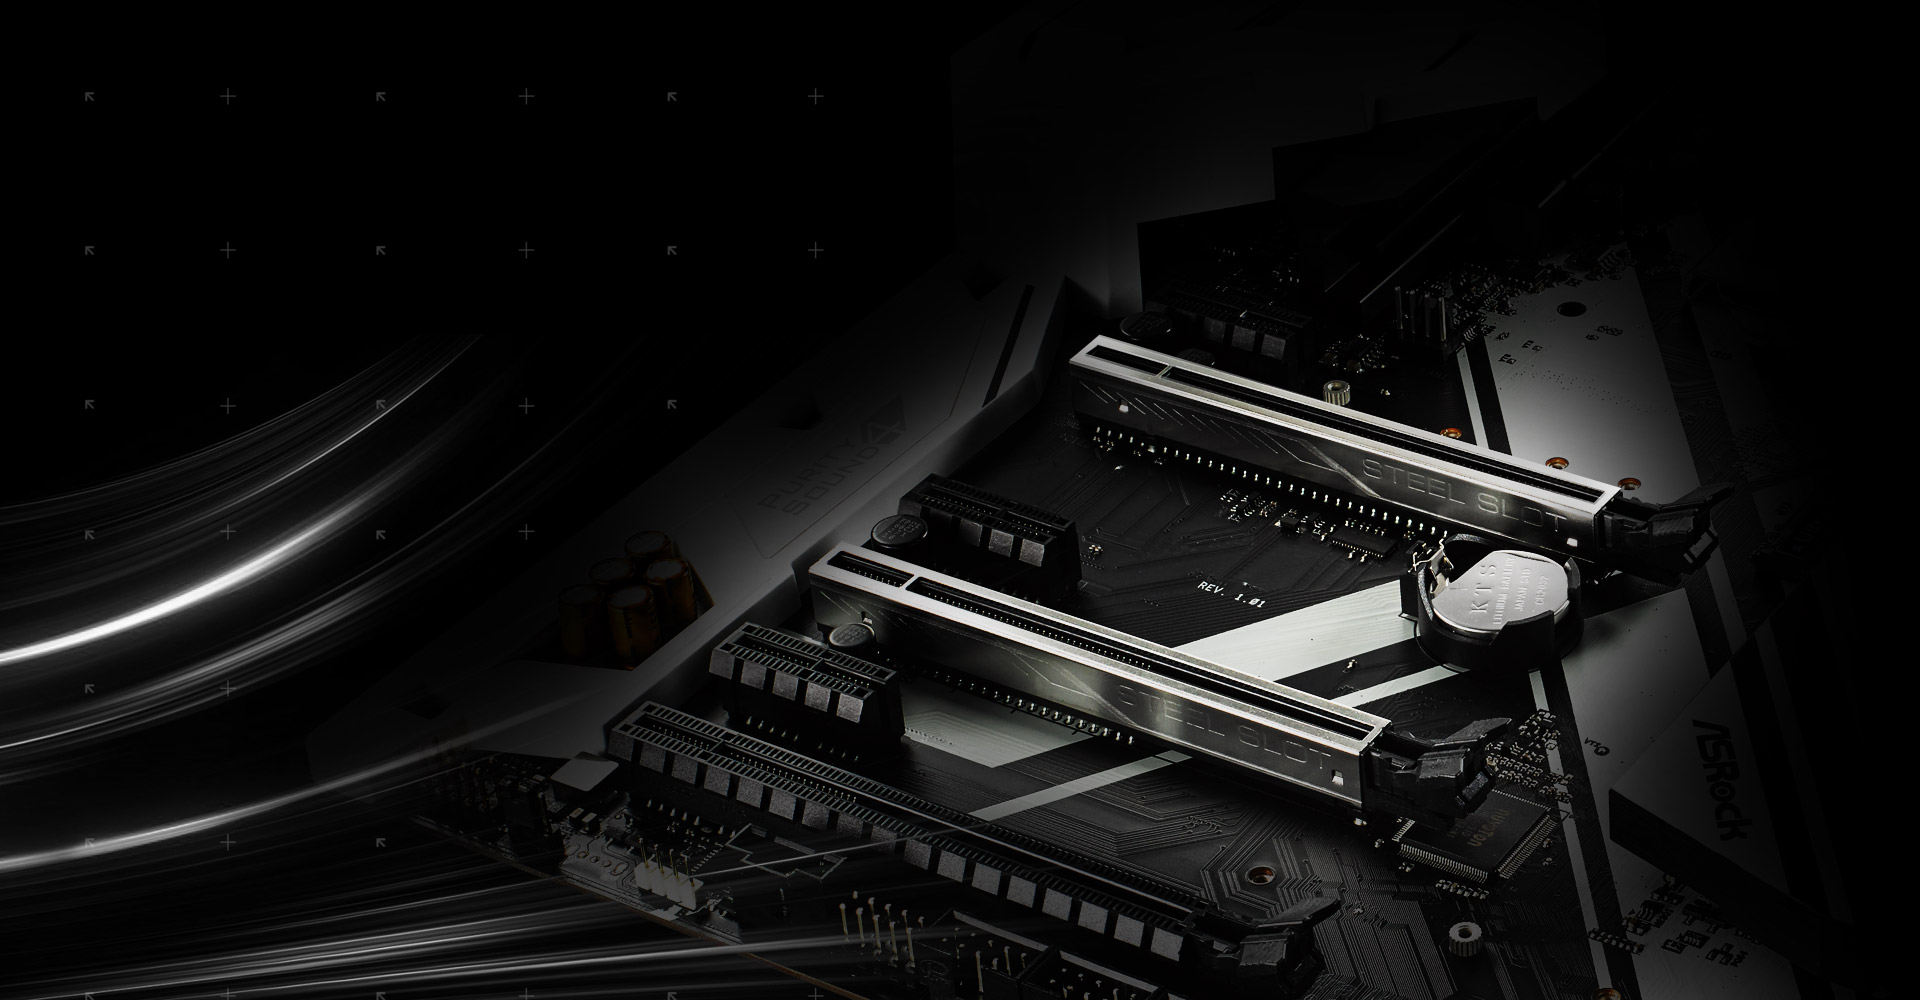 Asrock Z270 Extreme4 Maxim Integrated Max9835x Audio Amplifiers Mouser The Advanced Pci E Steel Slots Packed With Solid Cover That Prevent Any Signal Interference Graphics Cards It Also Ensures Heavy To